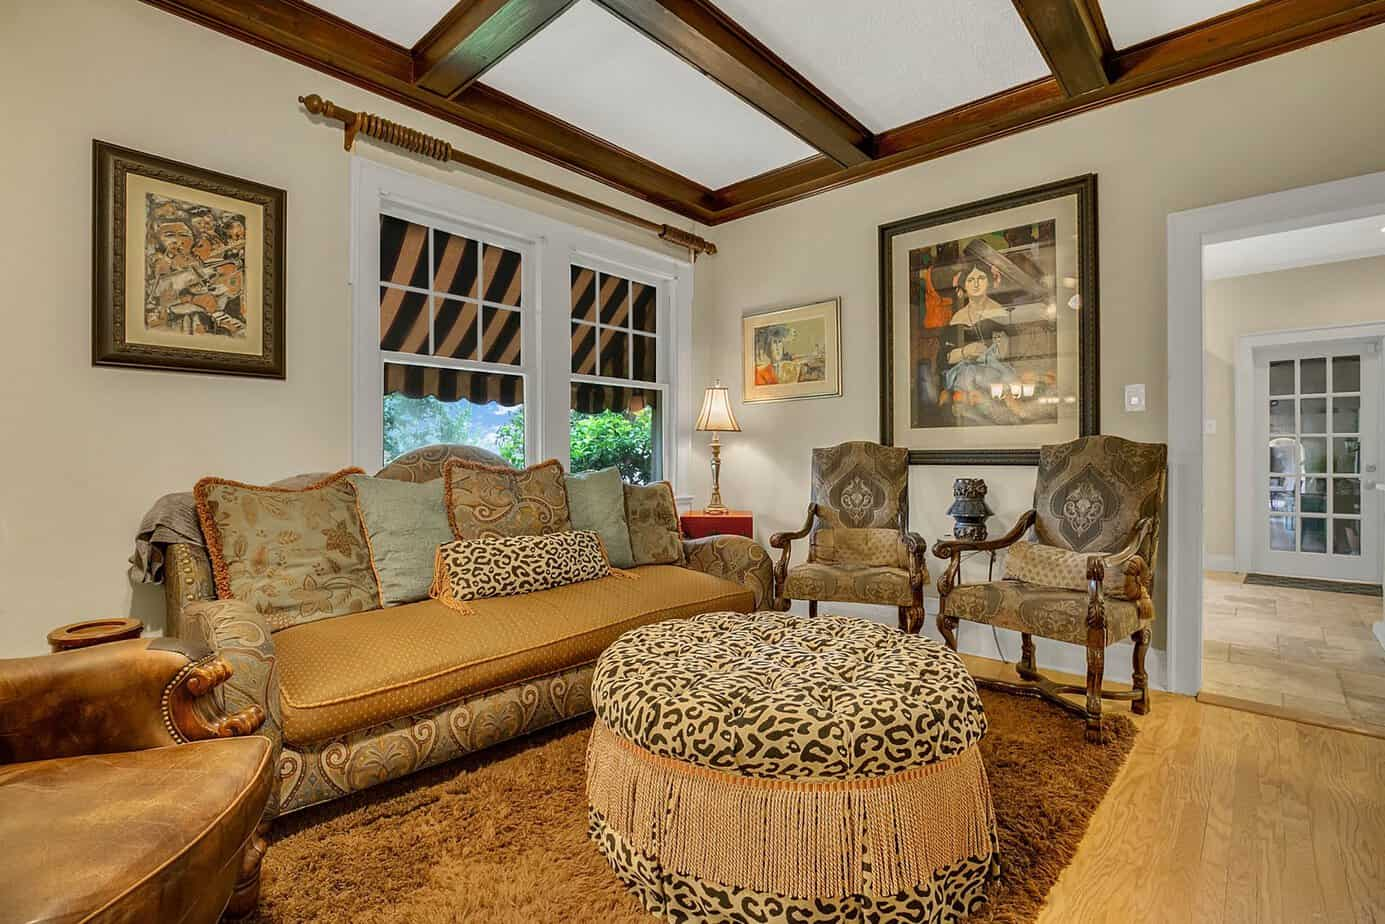 Picture of the cozy family room with couch, two chairs, wood floors, rug, beamed ceilings, for the home for sale at 4024 W Bay to Bay Tampa FL 33629